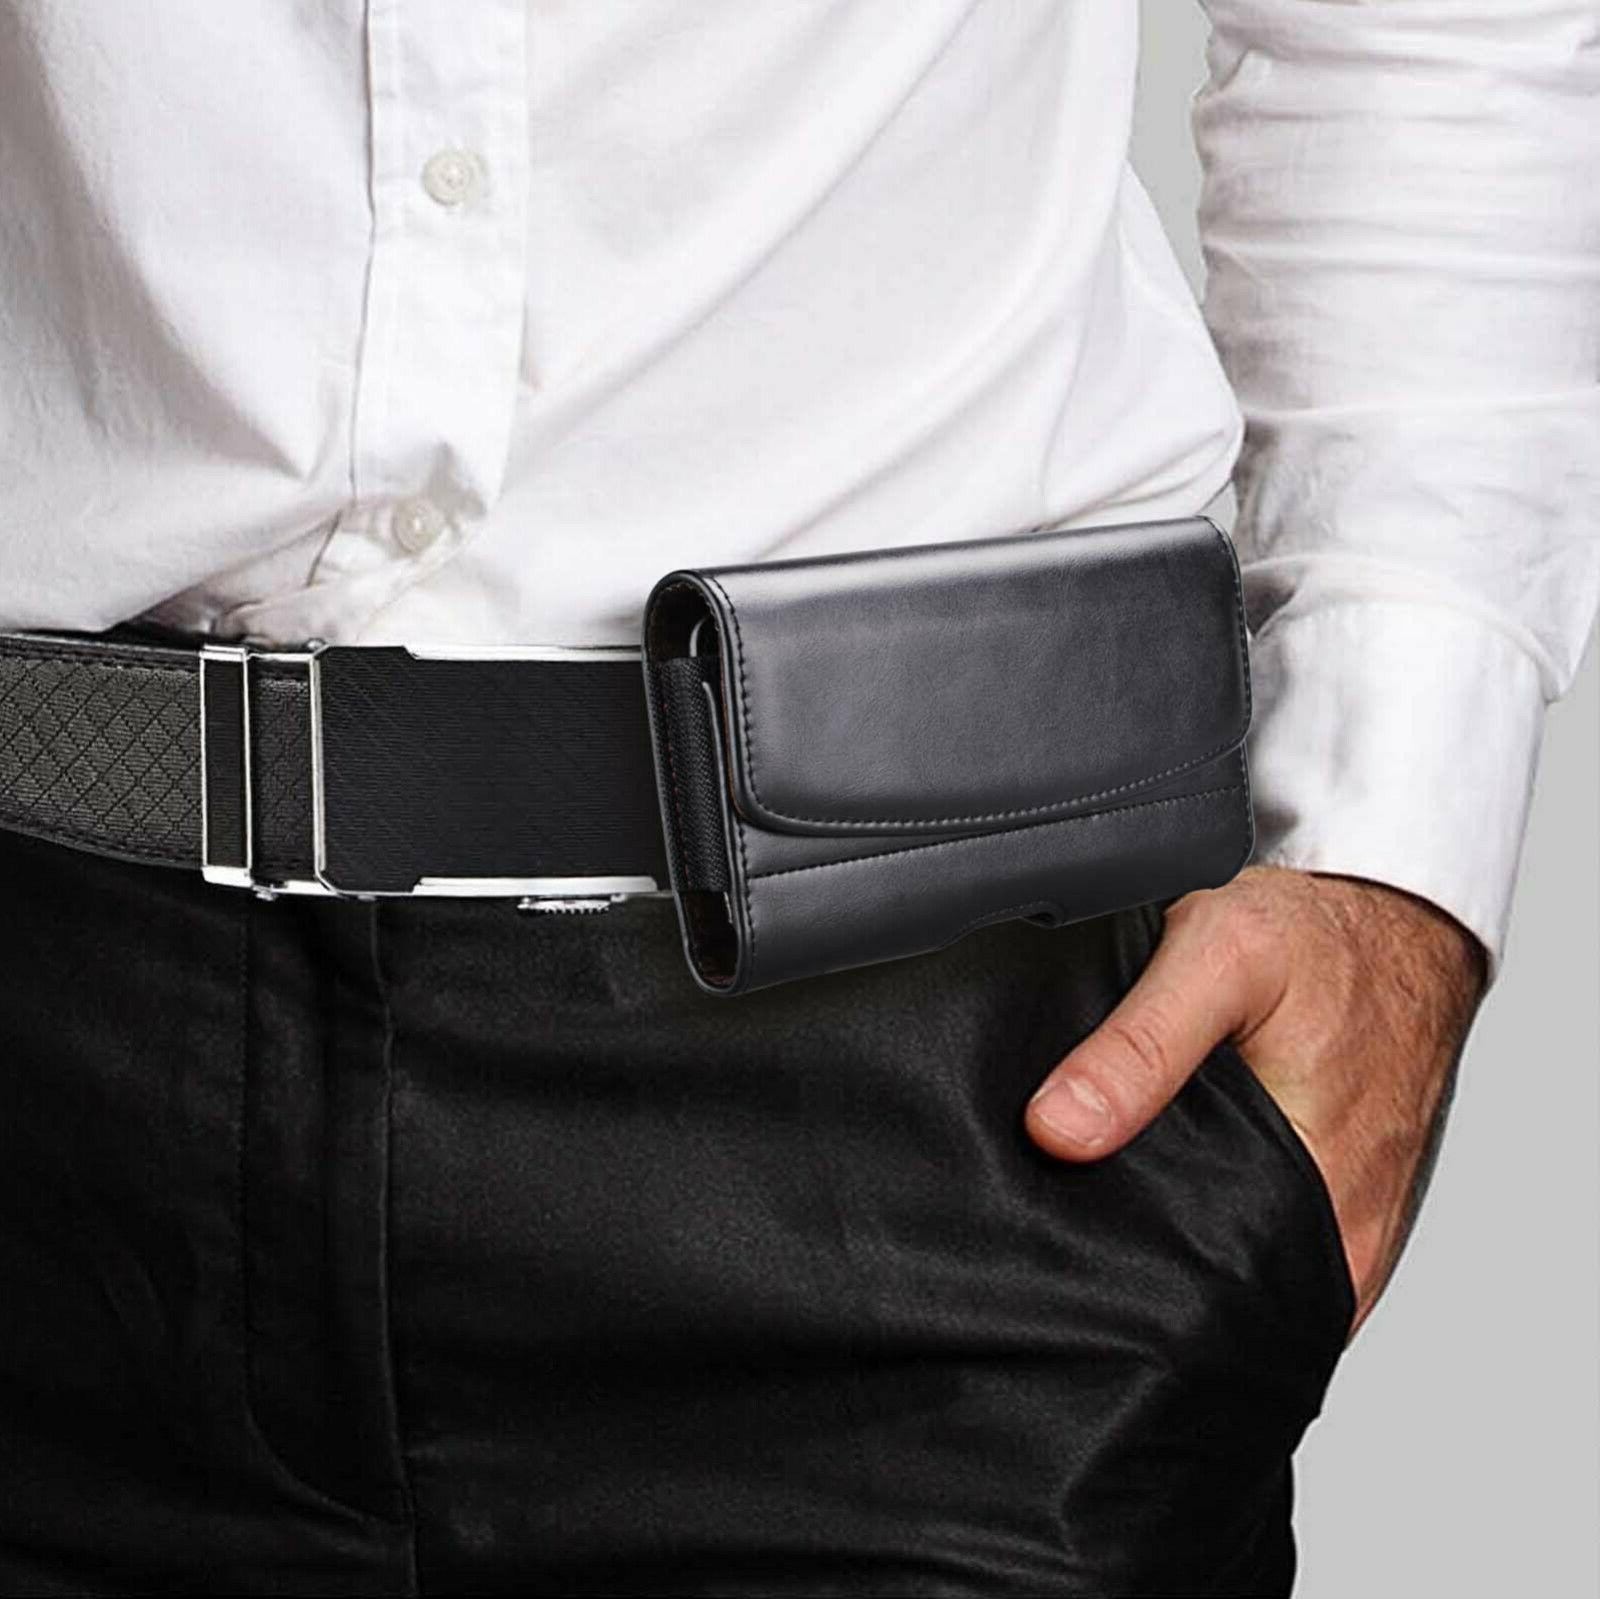 Leather Phone Holster Holder